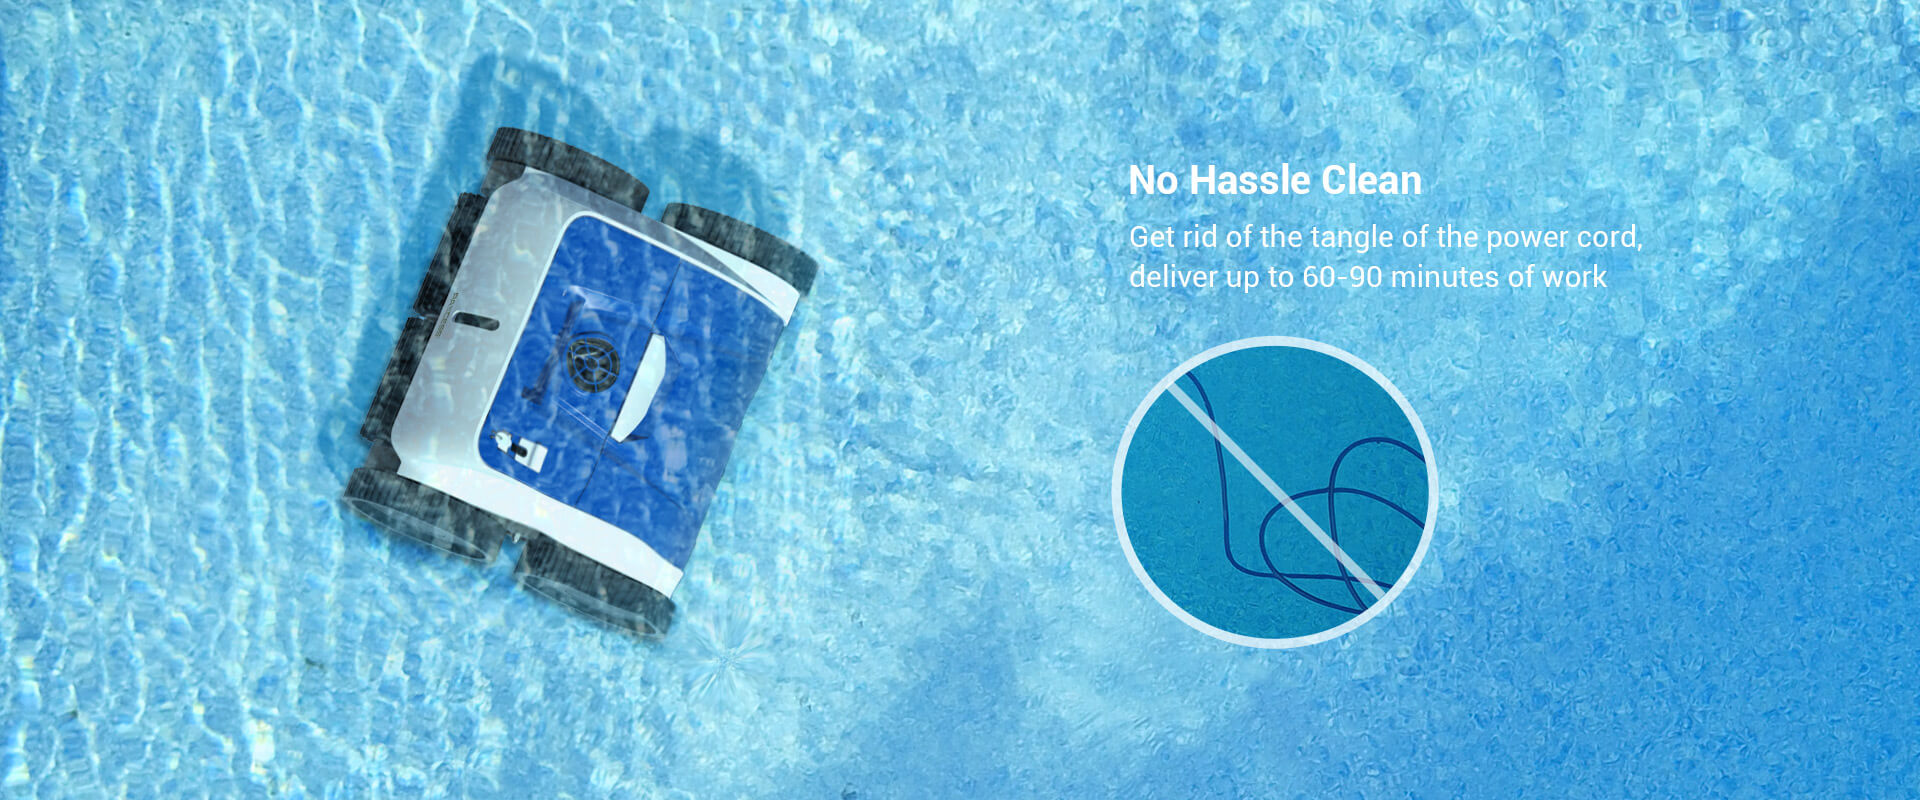 PAXCESS Cordless 8600 Robotic Pool Cleaner (4)